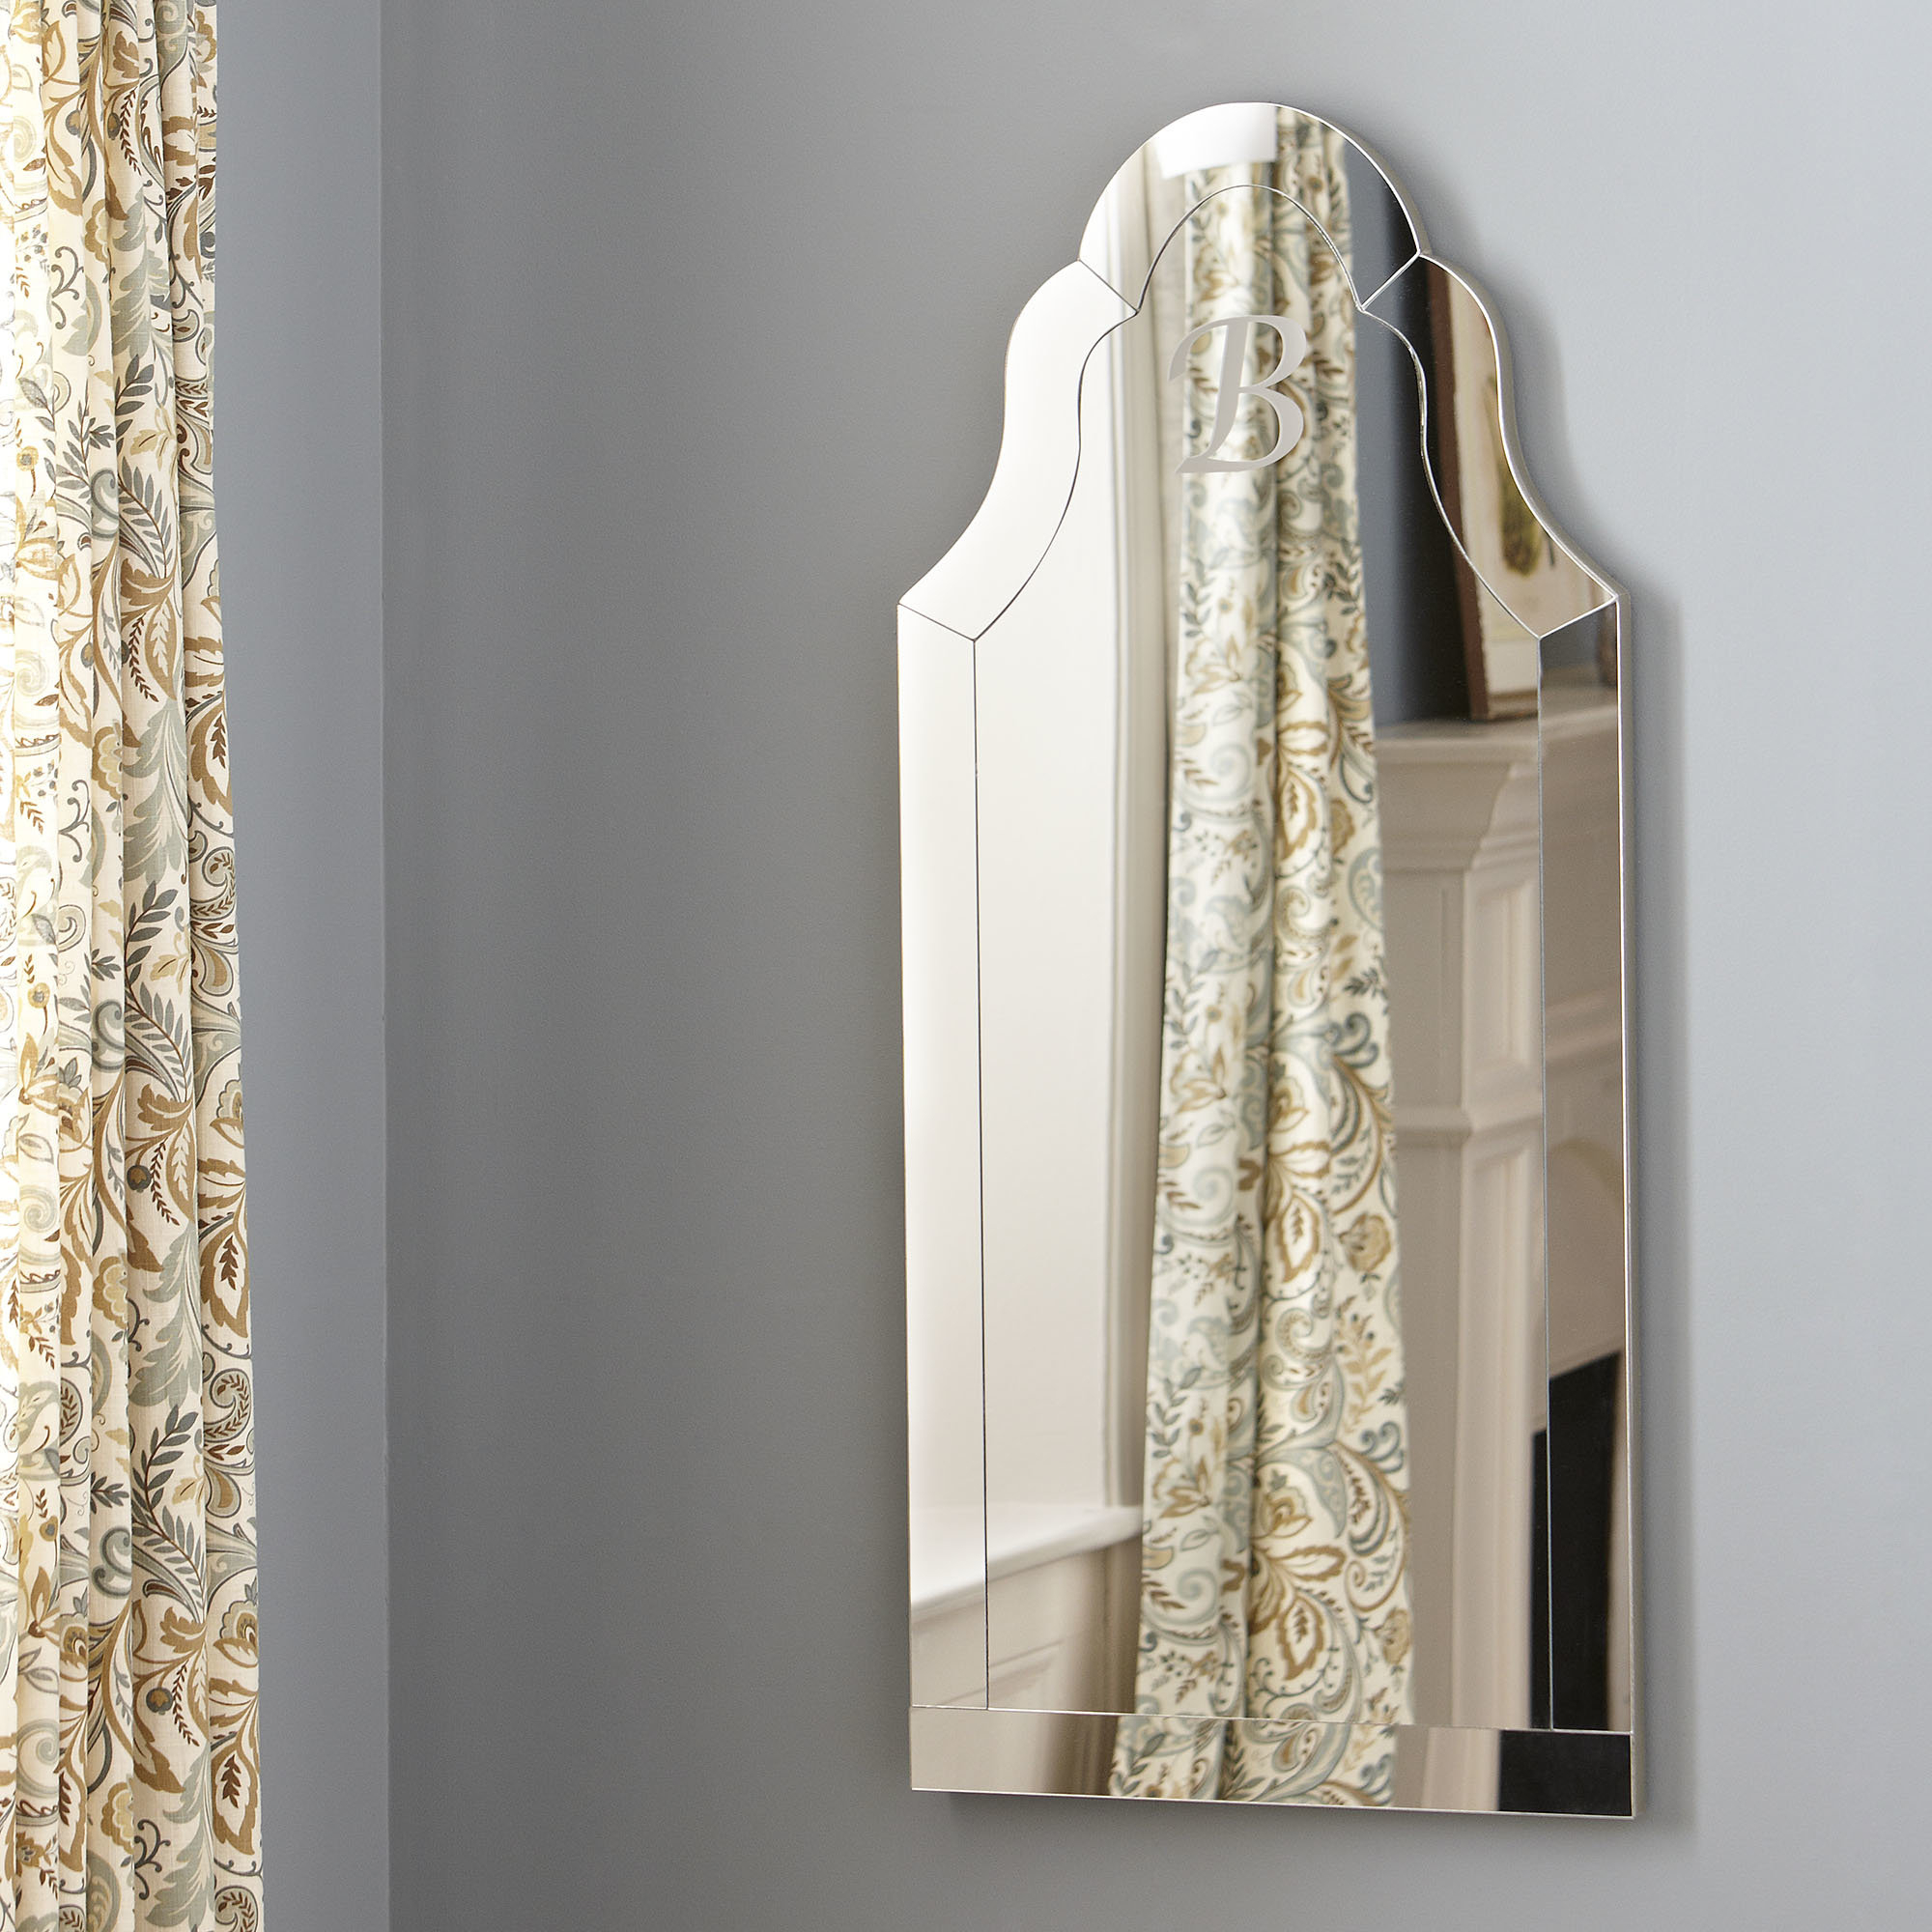 Margaux Arch Wall Mirror Intended For Gold Arch Wall Mirrors (View 17 of 20)